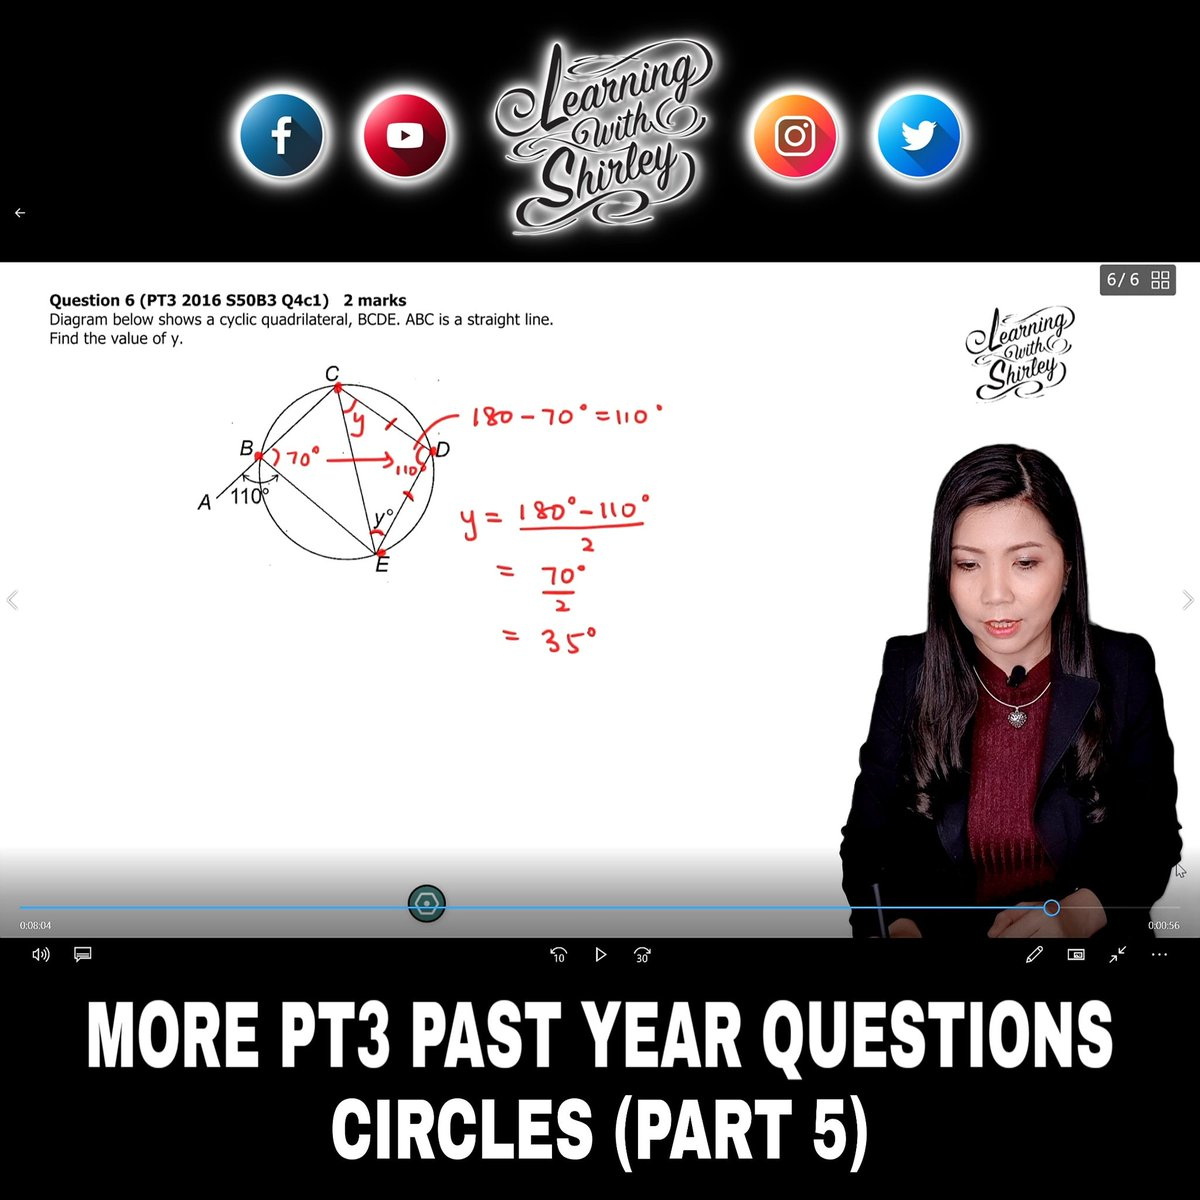 Sneak preview on my latest video coming up TODAY at 4.00pm   SUBSCRIBE to my YouTube channel: http://www.youtube.com/c/learningwithshirley…  #youtube #PT3 #pastyear #circles #studygram #studynotes #studymotivation #math #exam #exams #studymood #education #learning #learningwithshirleypic.twitter.com/WVtnMNcf81